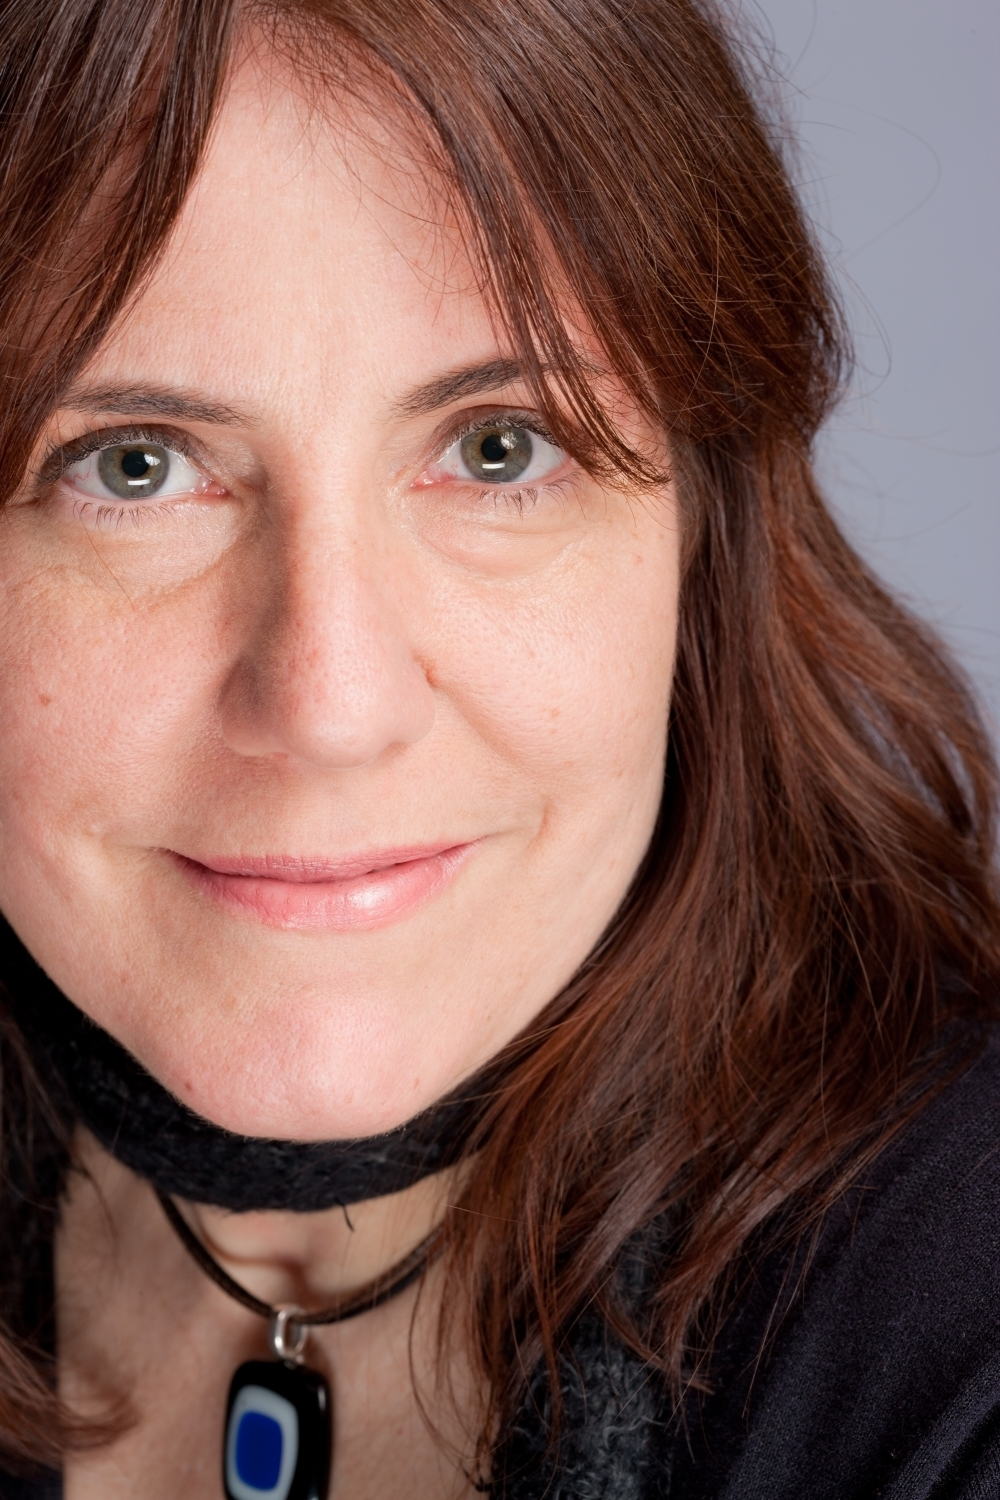 BWW Interview: Mona Mansour of THE VAGRANT TRILOGY at Atlas Performing Arts Center